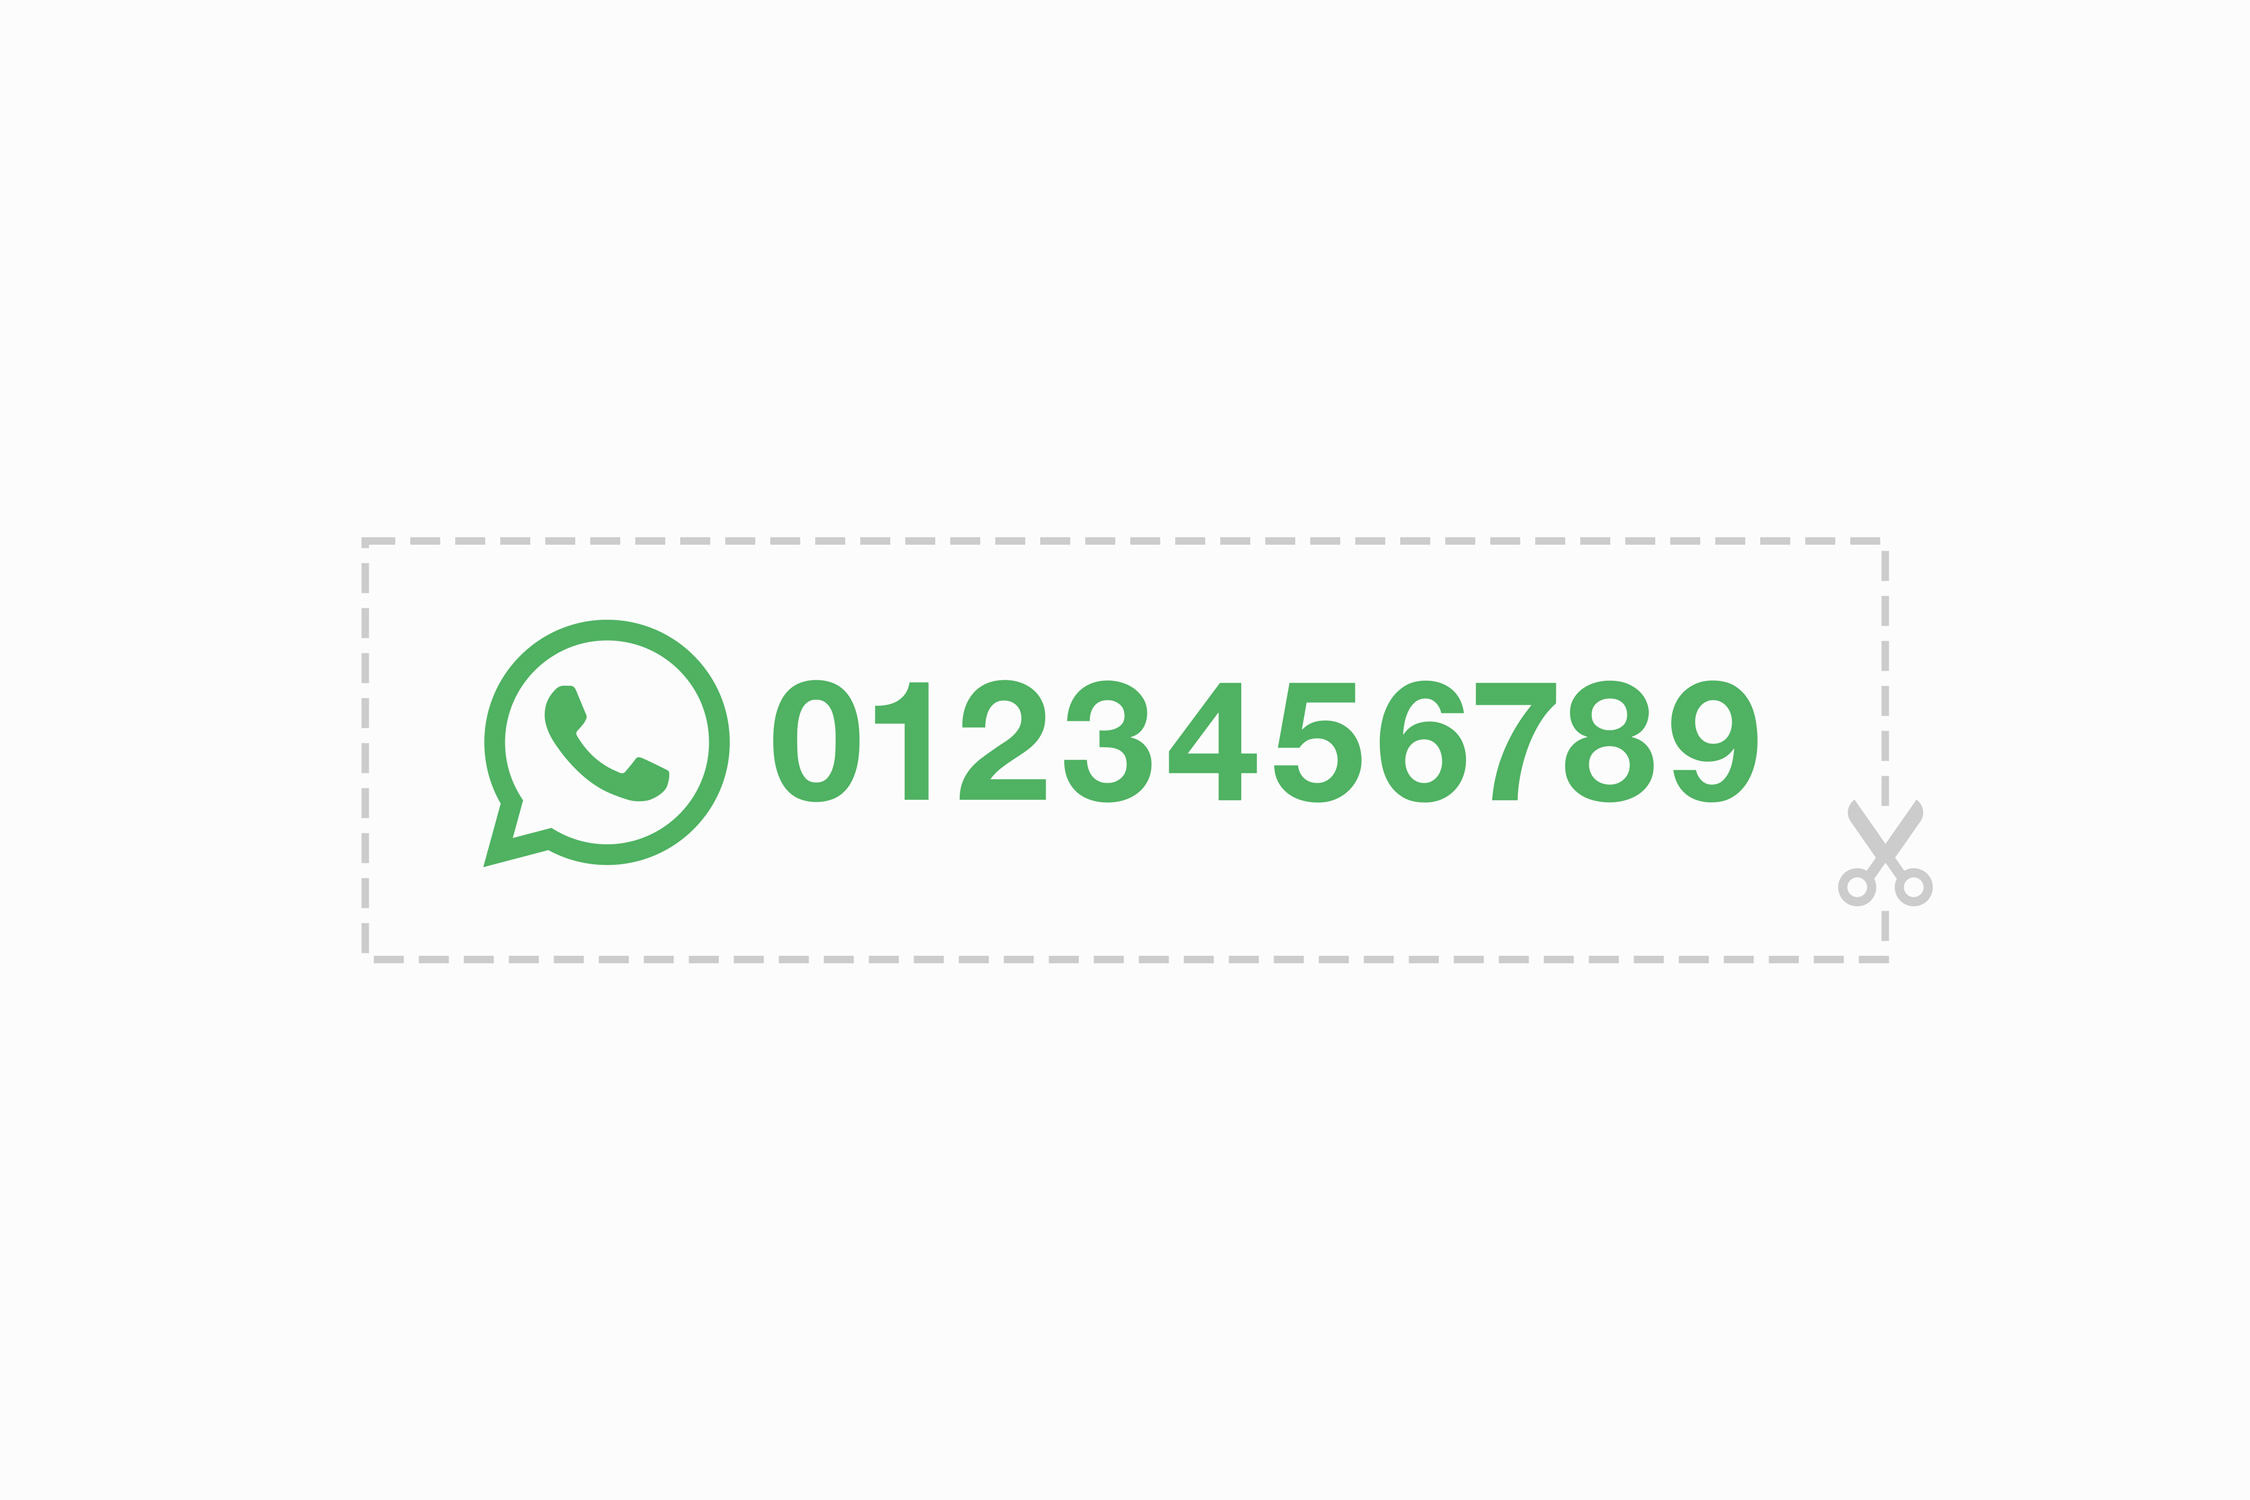 Basari Design - Sticker 004 WhatsApp